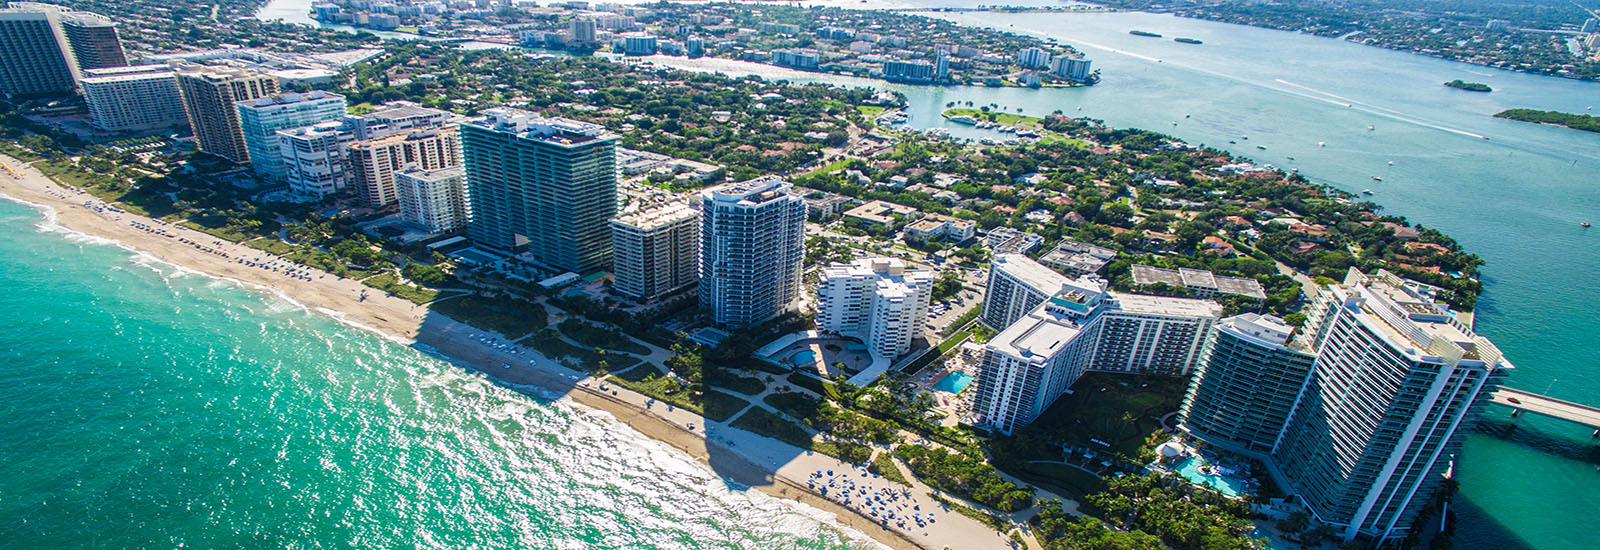 This is a stock photo. An aerial image of the Miami Beach coastline.